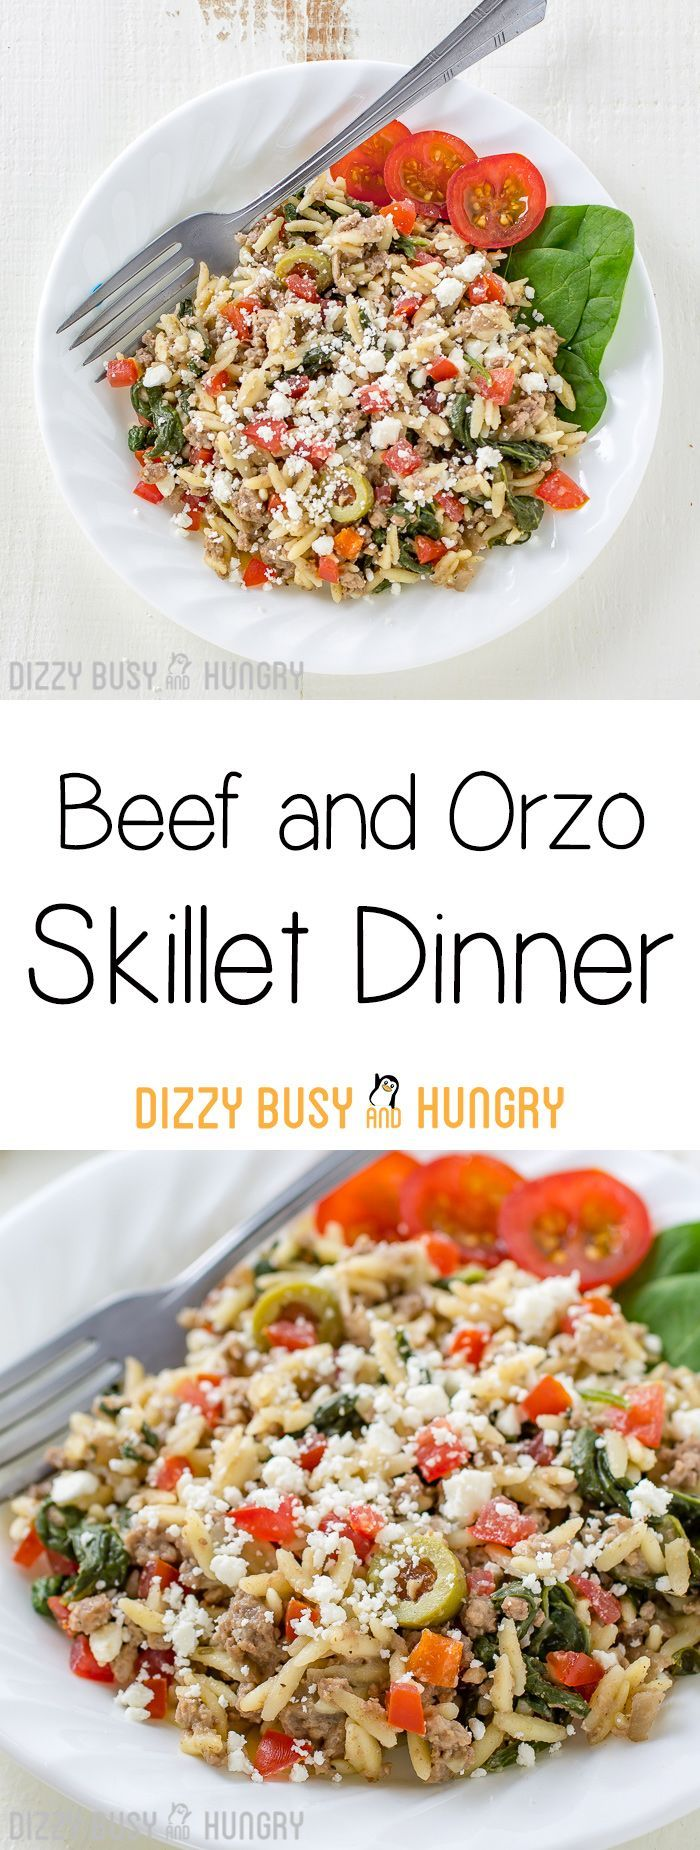 Beef and Orzo Skillet Dinner   DizzyBusyandHungry.com - If you like easy ground beef recipes you can make in one pan, you will love this hearty and delicious Beef and Orzo Skillet Meal!